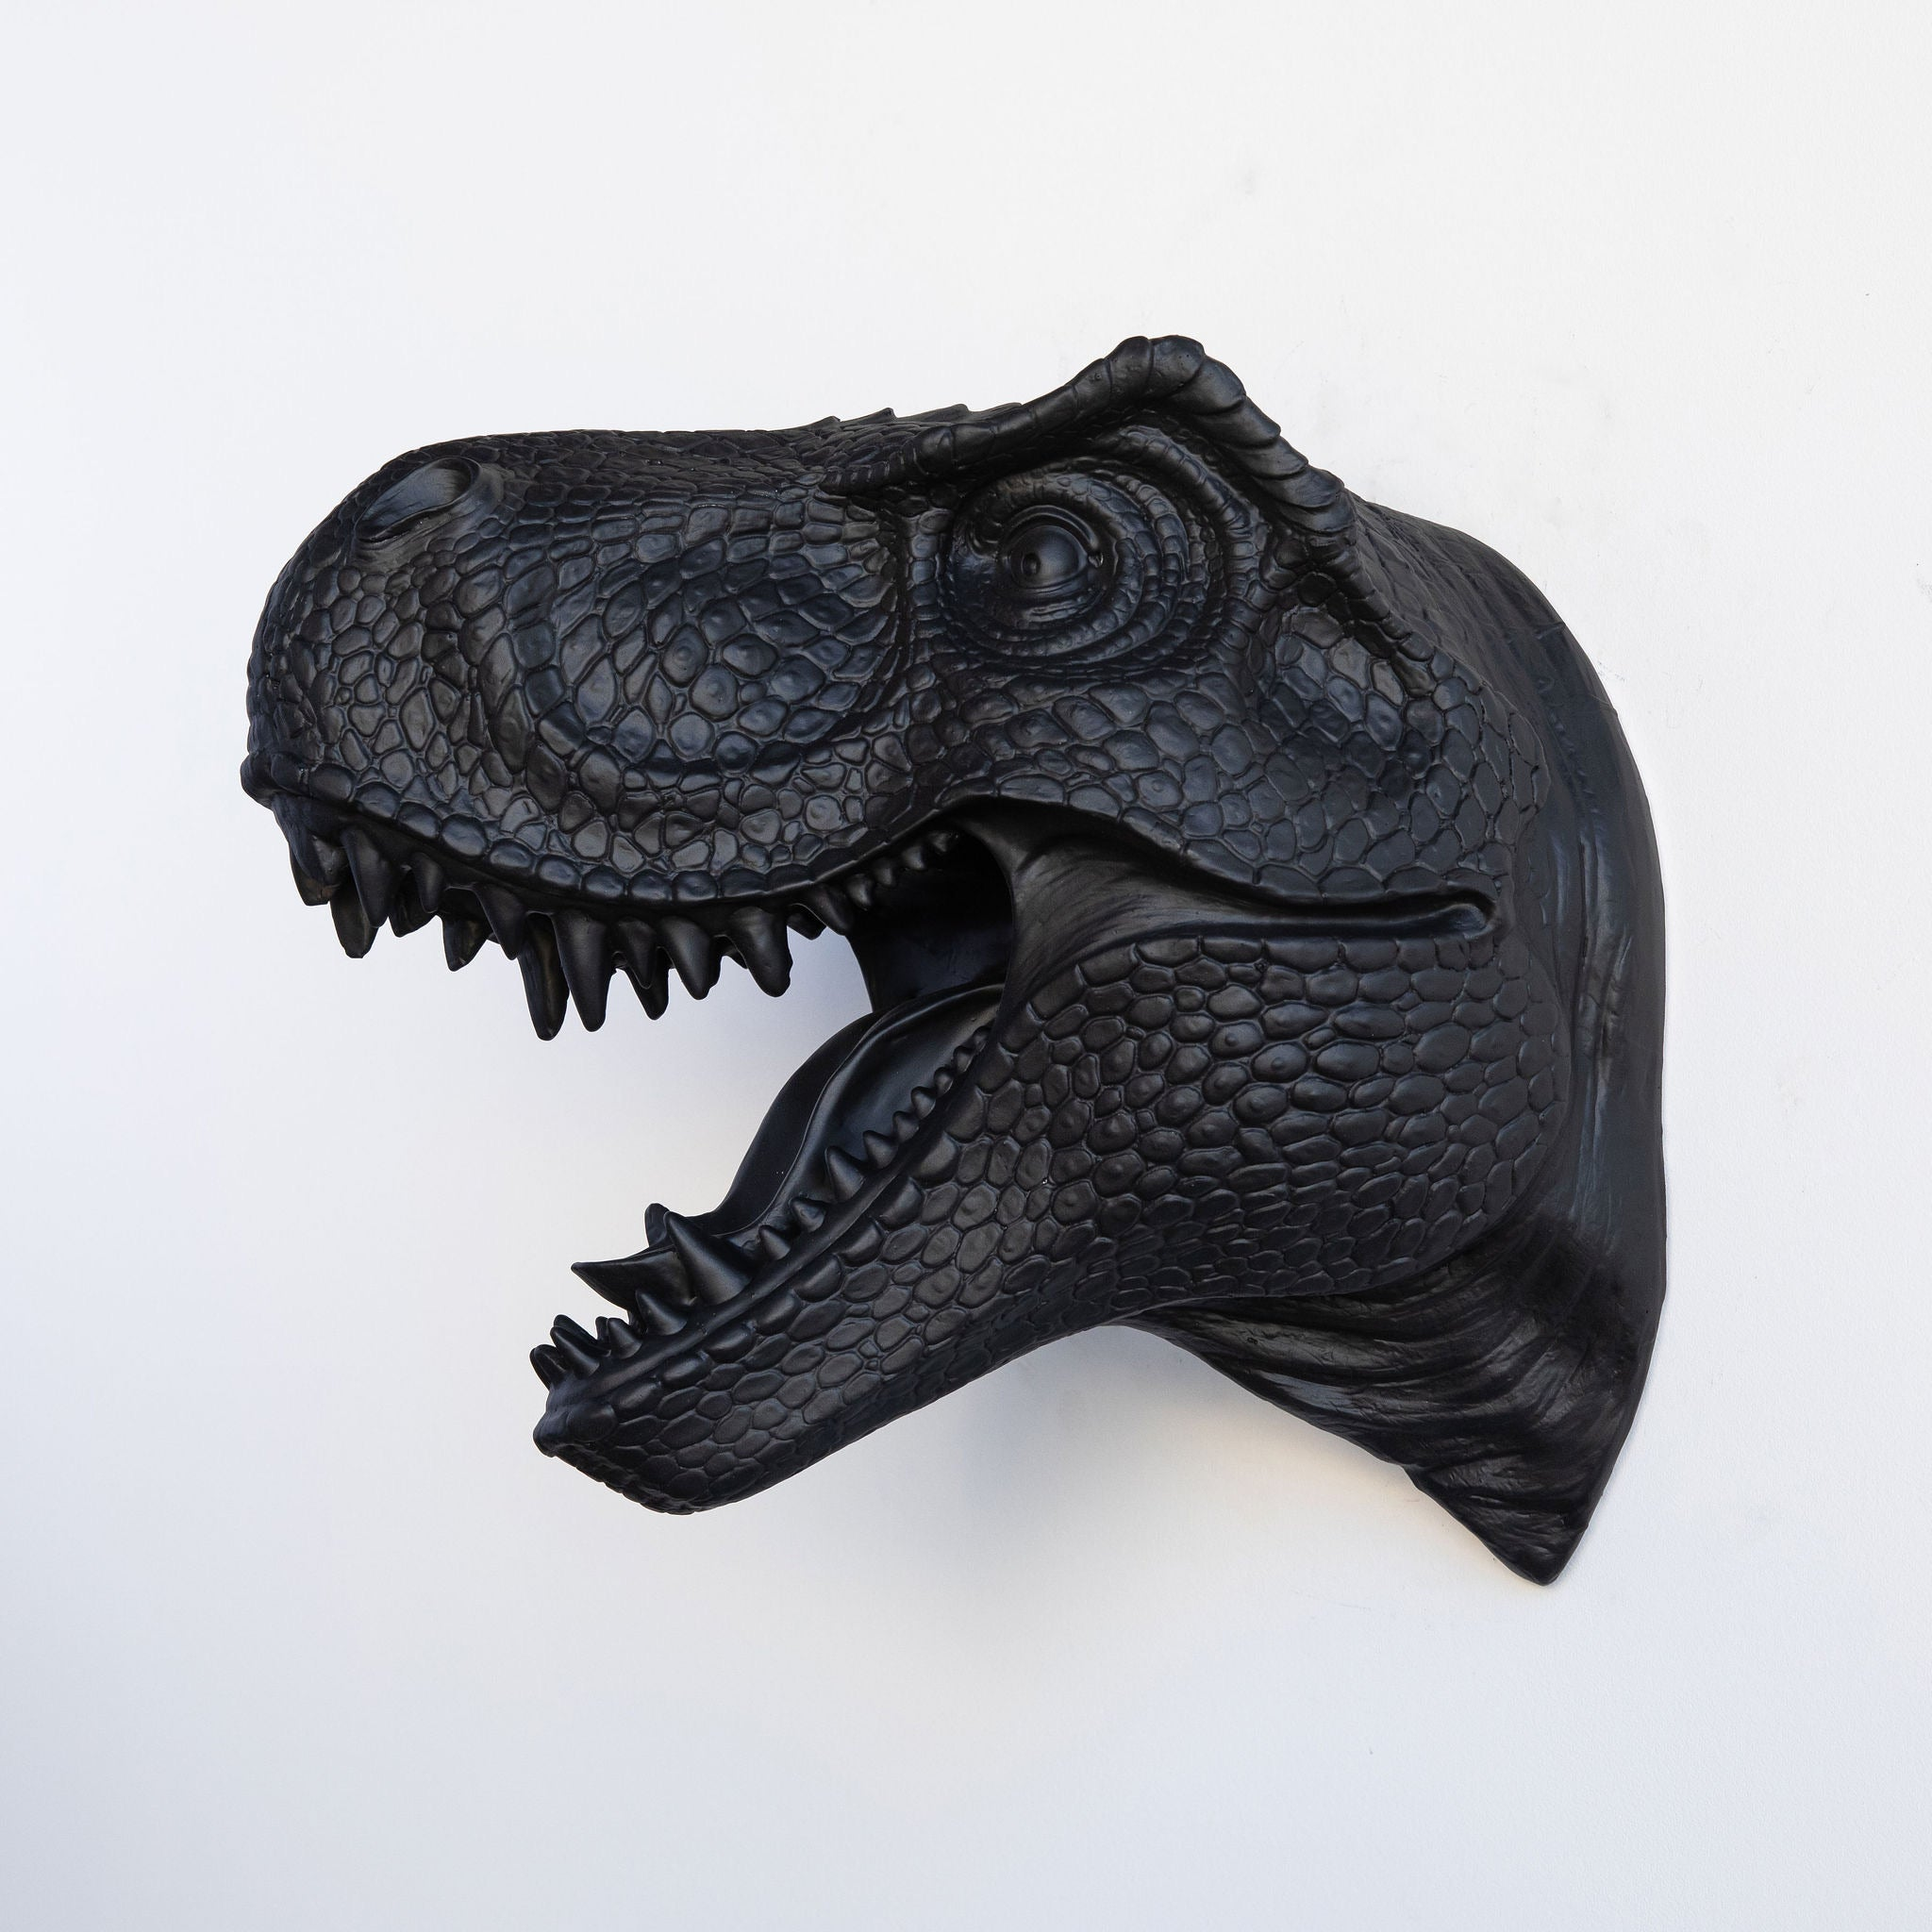 T-Rex Dinosaur Head Wall Mount // Black